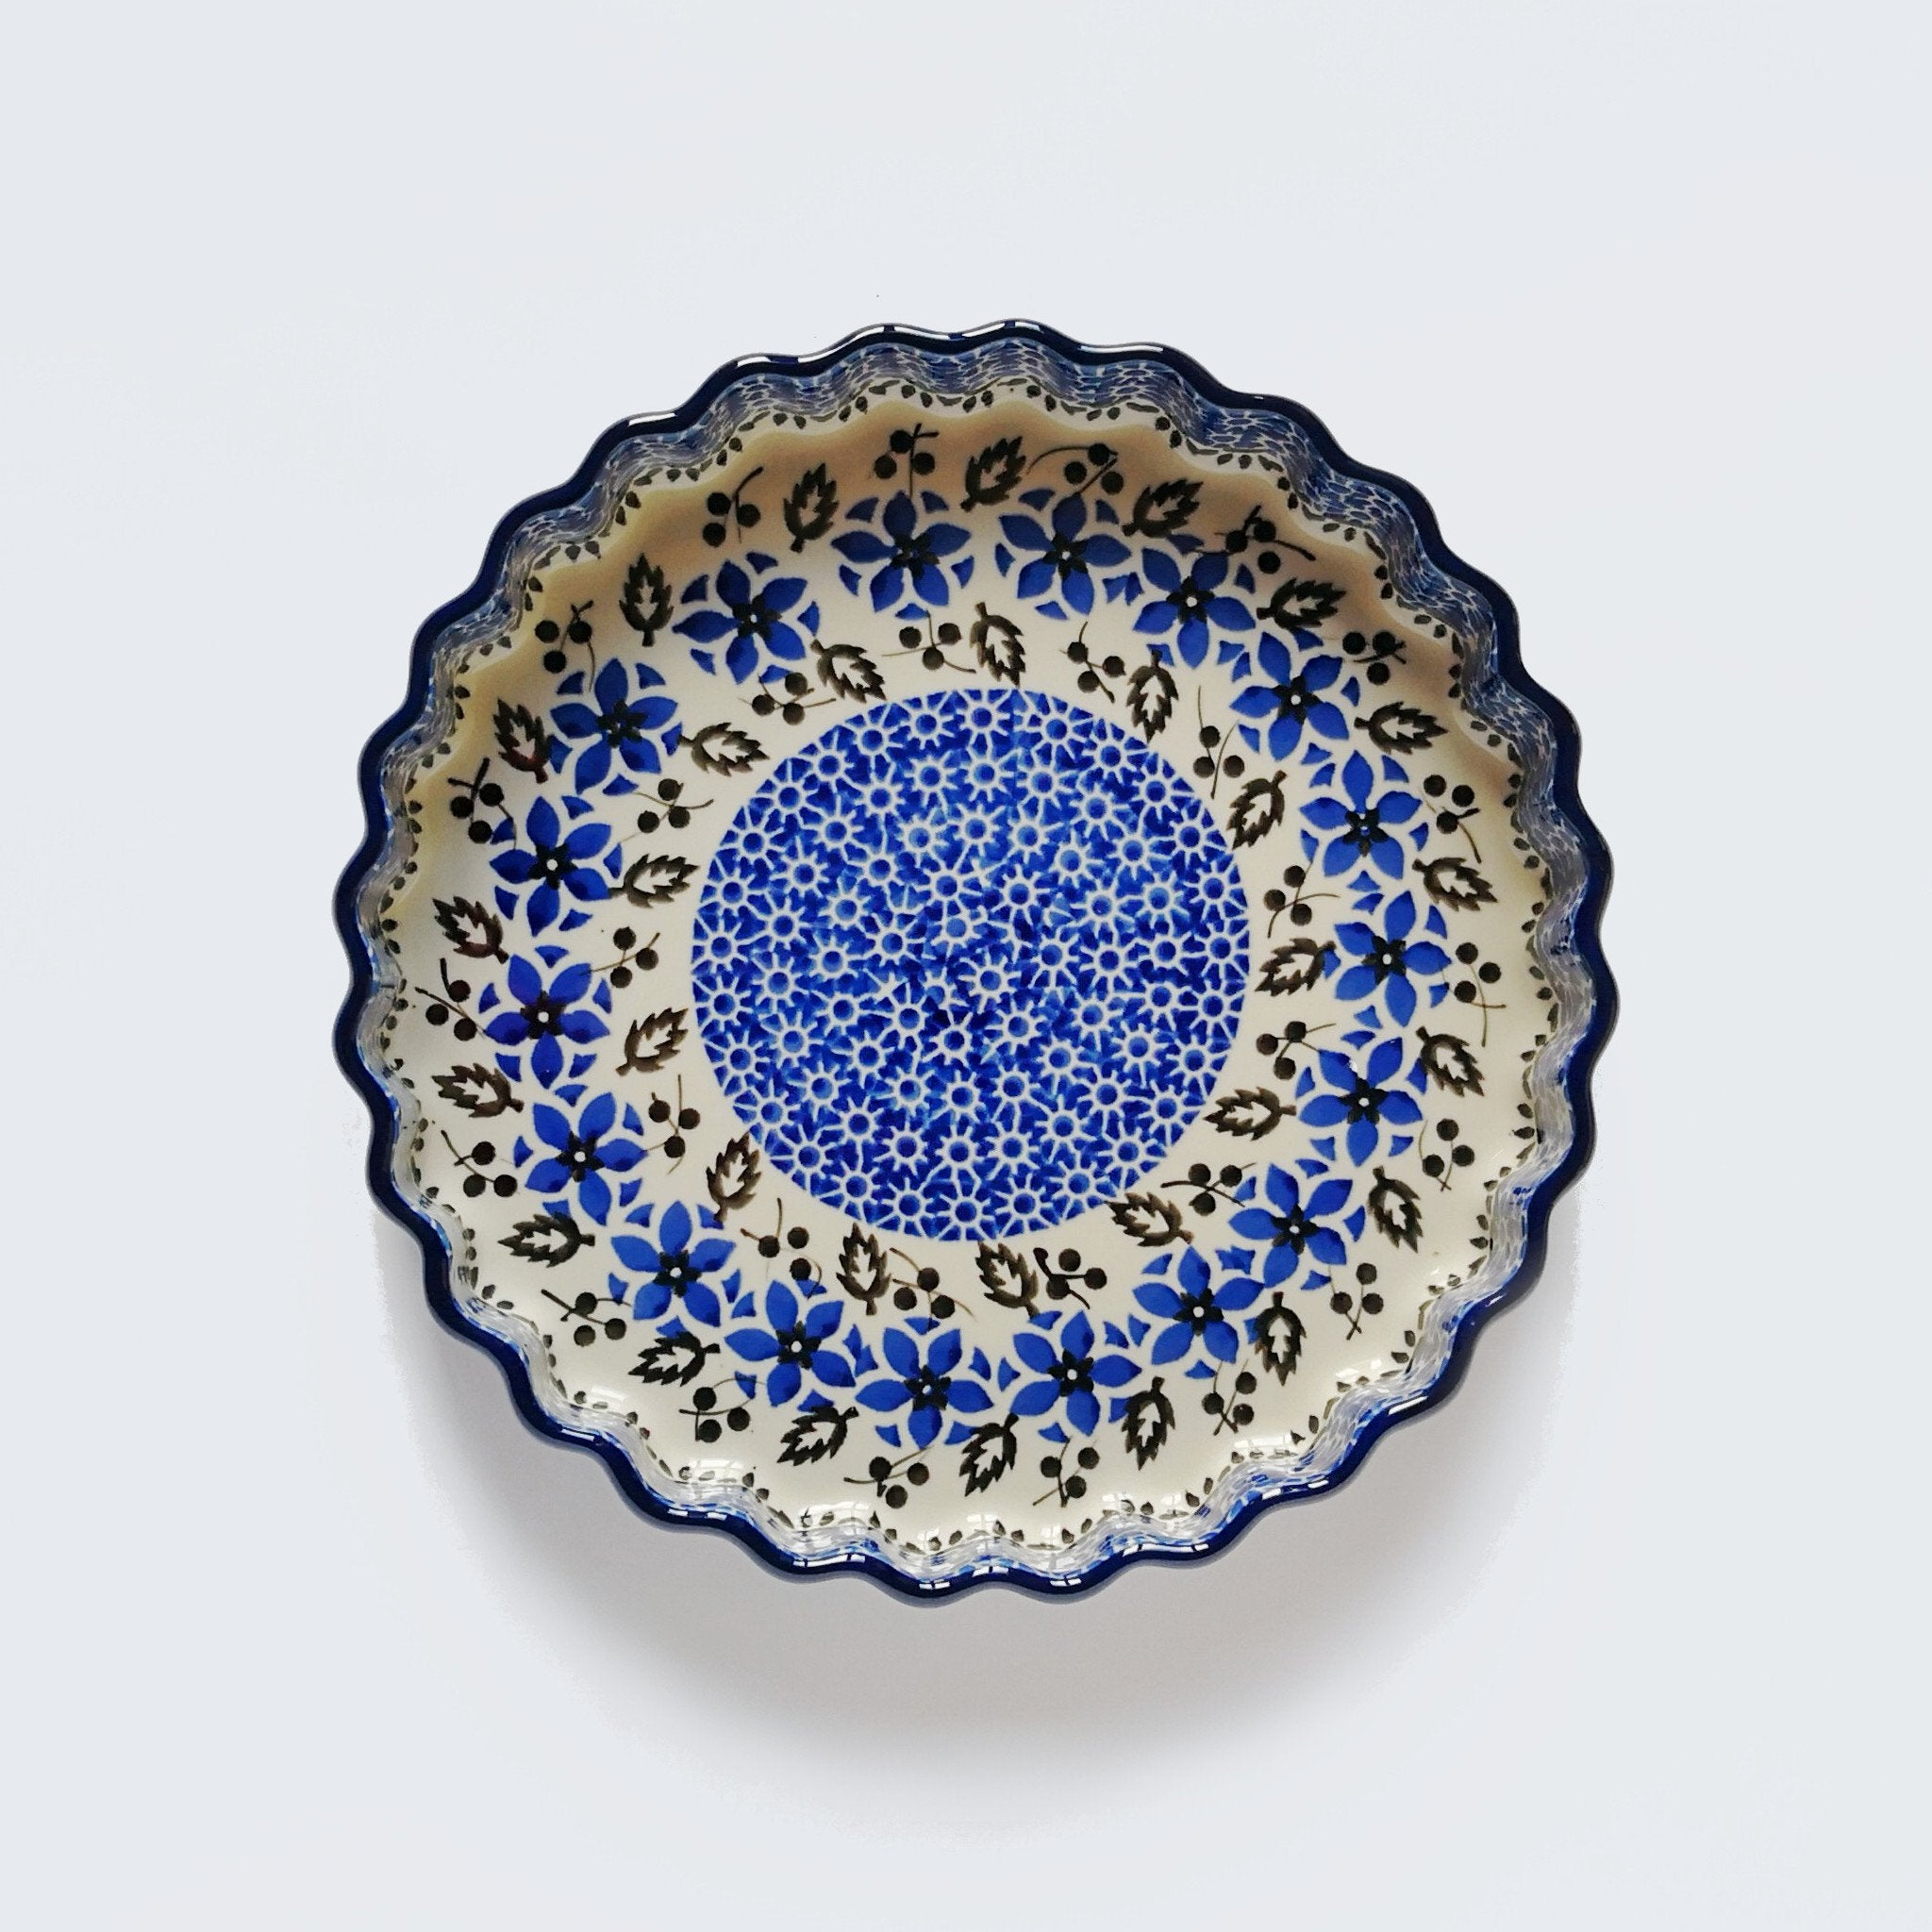 Quiche Dish in Periwinkle